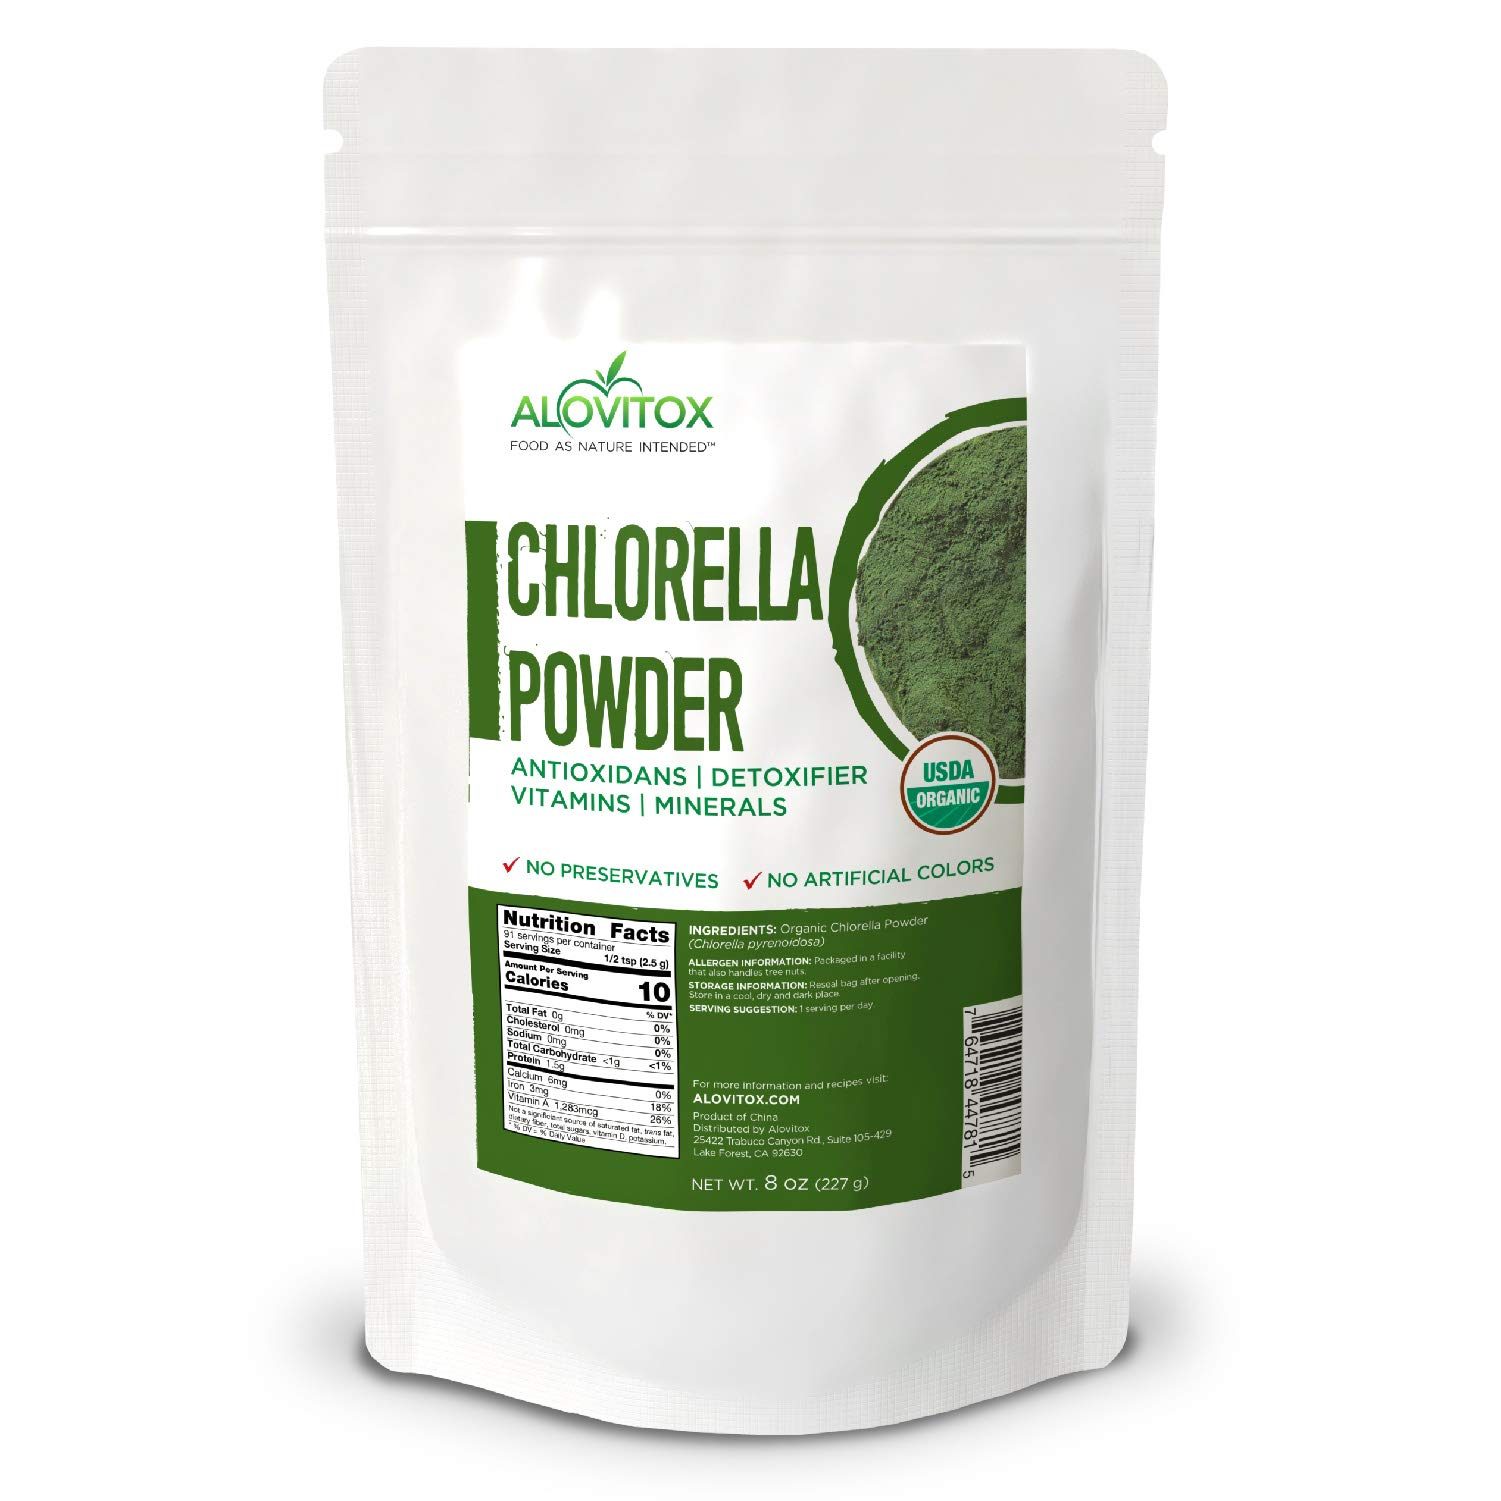 Organic Chlorella Powder 8oz   Nutrient Dense Superfood with Antioxidants, Proteins, Vitamins C, E, B Complex, Enzymes, Chlorophyll, Omegas 3 and More  USDA Organic Raw No Additives or Colors